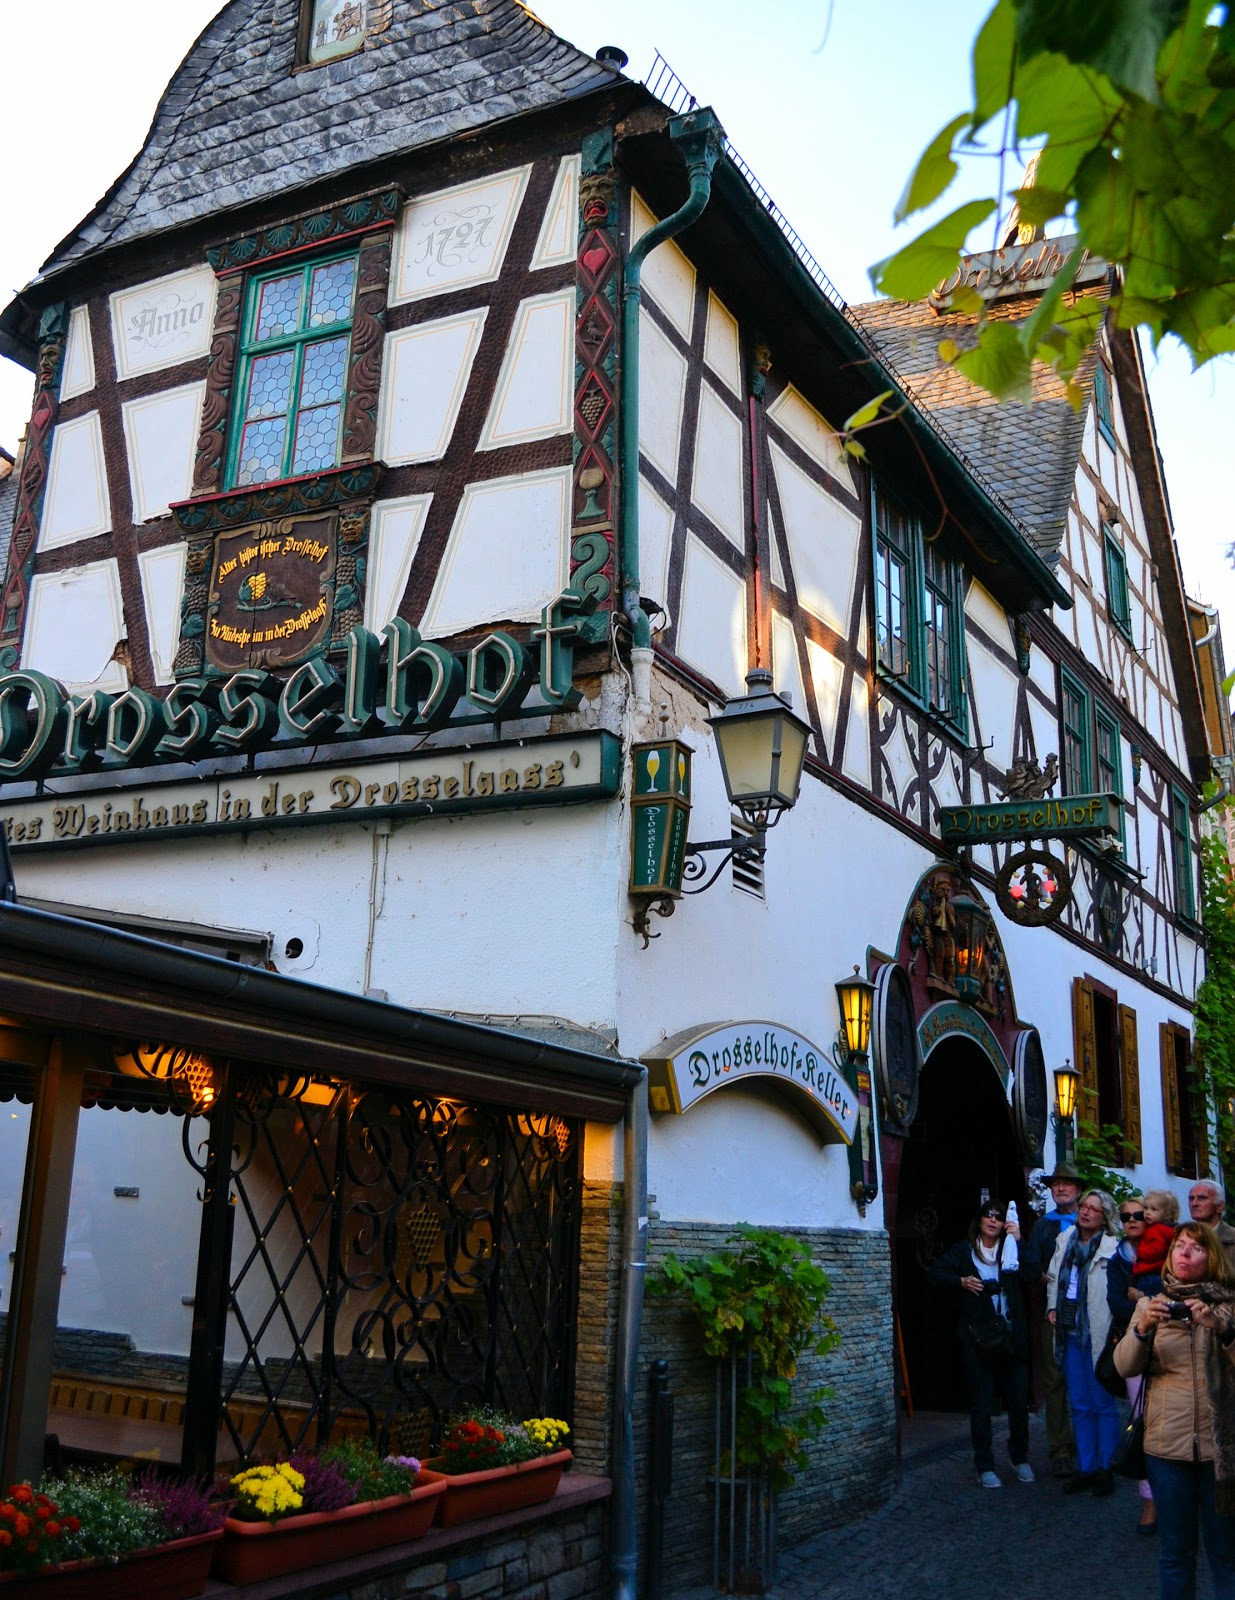 Wine taverns line the street from top of the hill to the Rhine; among them, the oldest dates to 1727—Drosselhof.